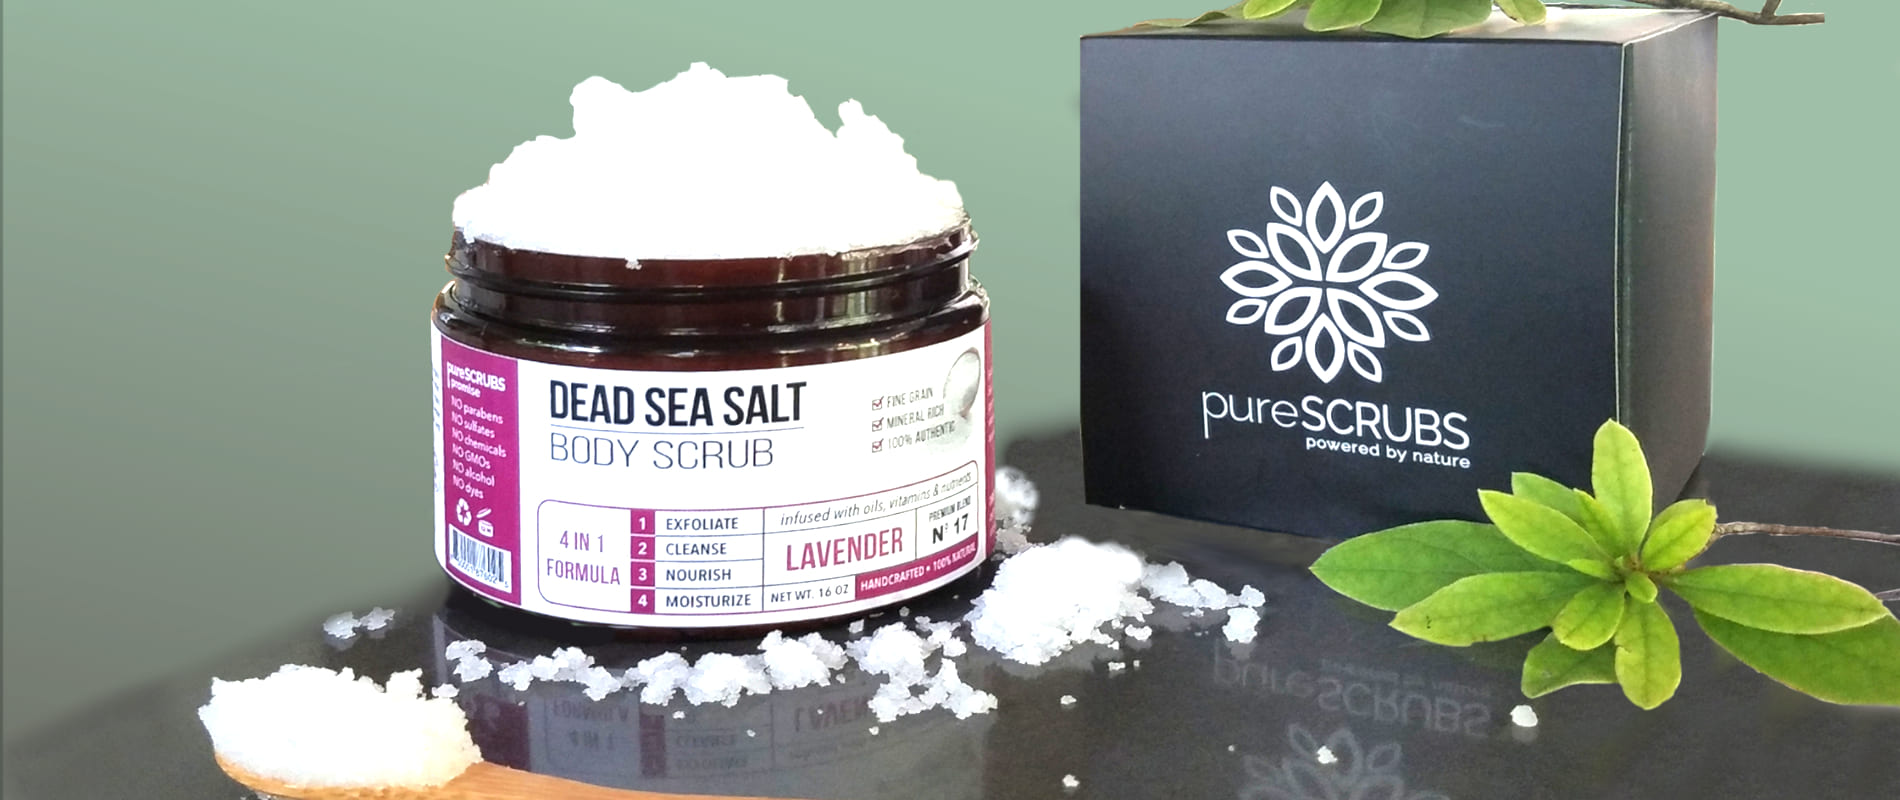 pureSCRUBS® luxury organic dead sea salt body scrubs to gently exfoliate for beautiful skin - softer, smoother, healthier glowing skin - your skin will love it.